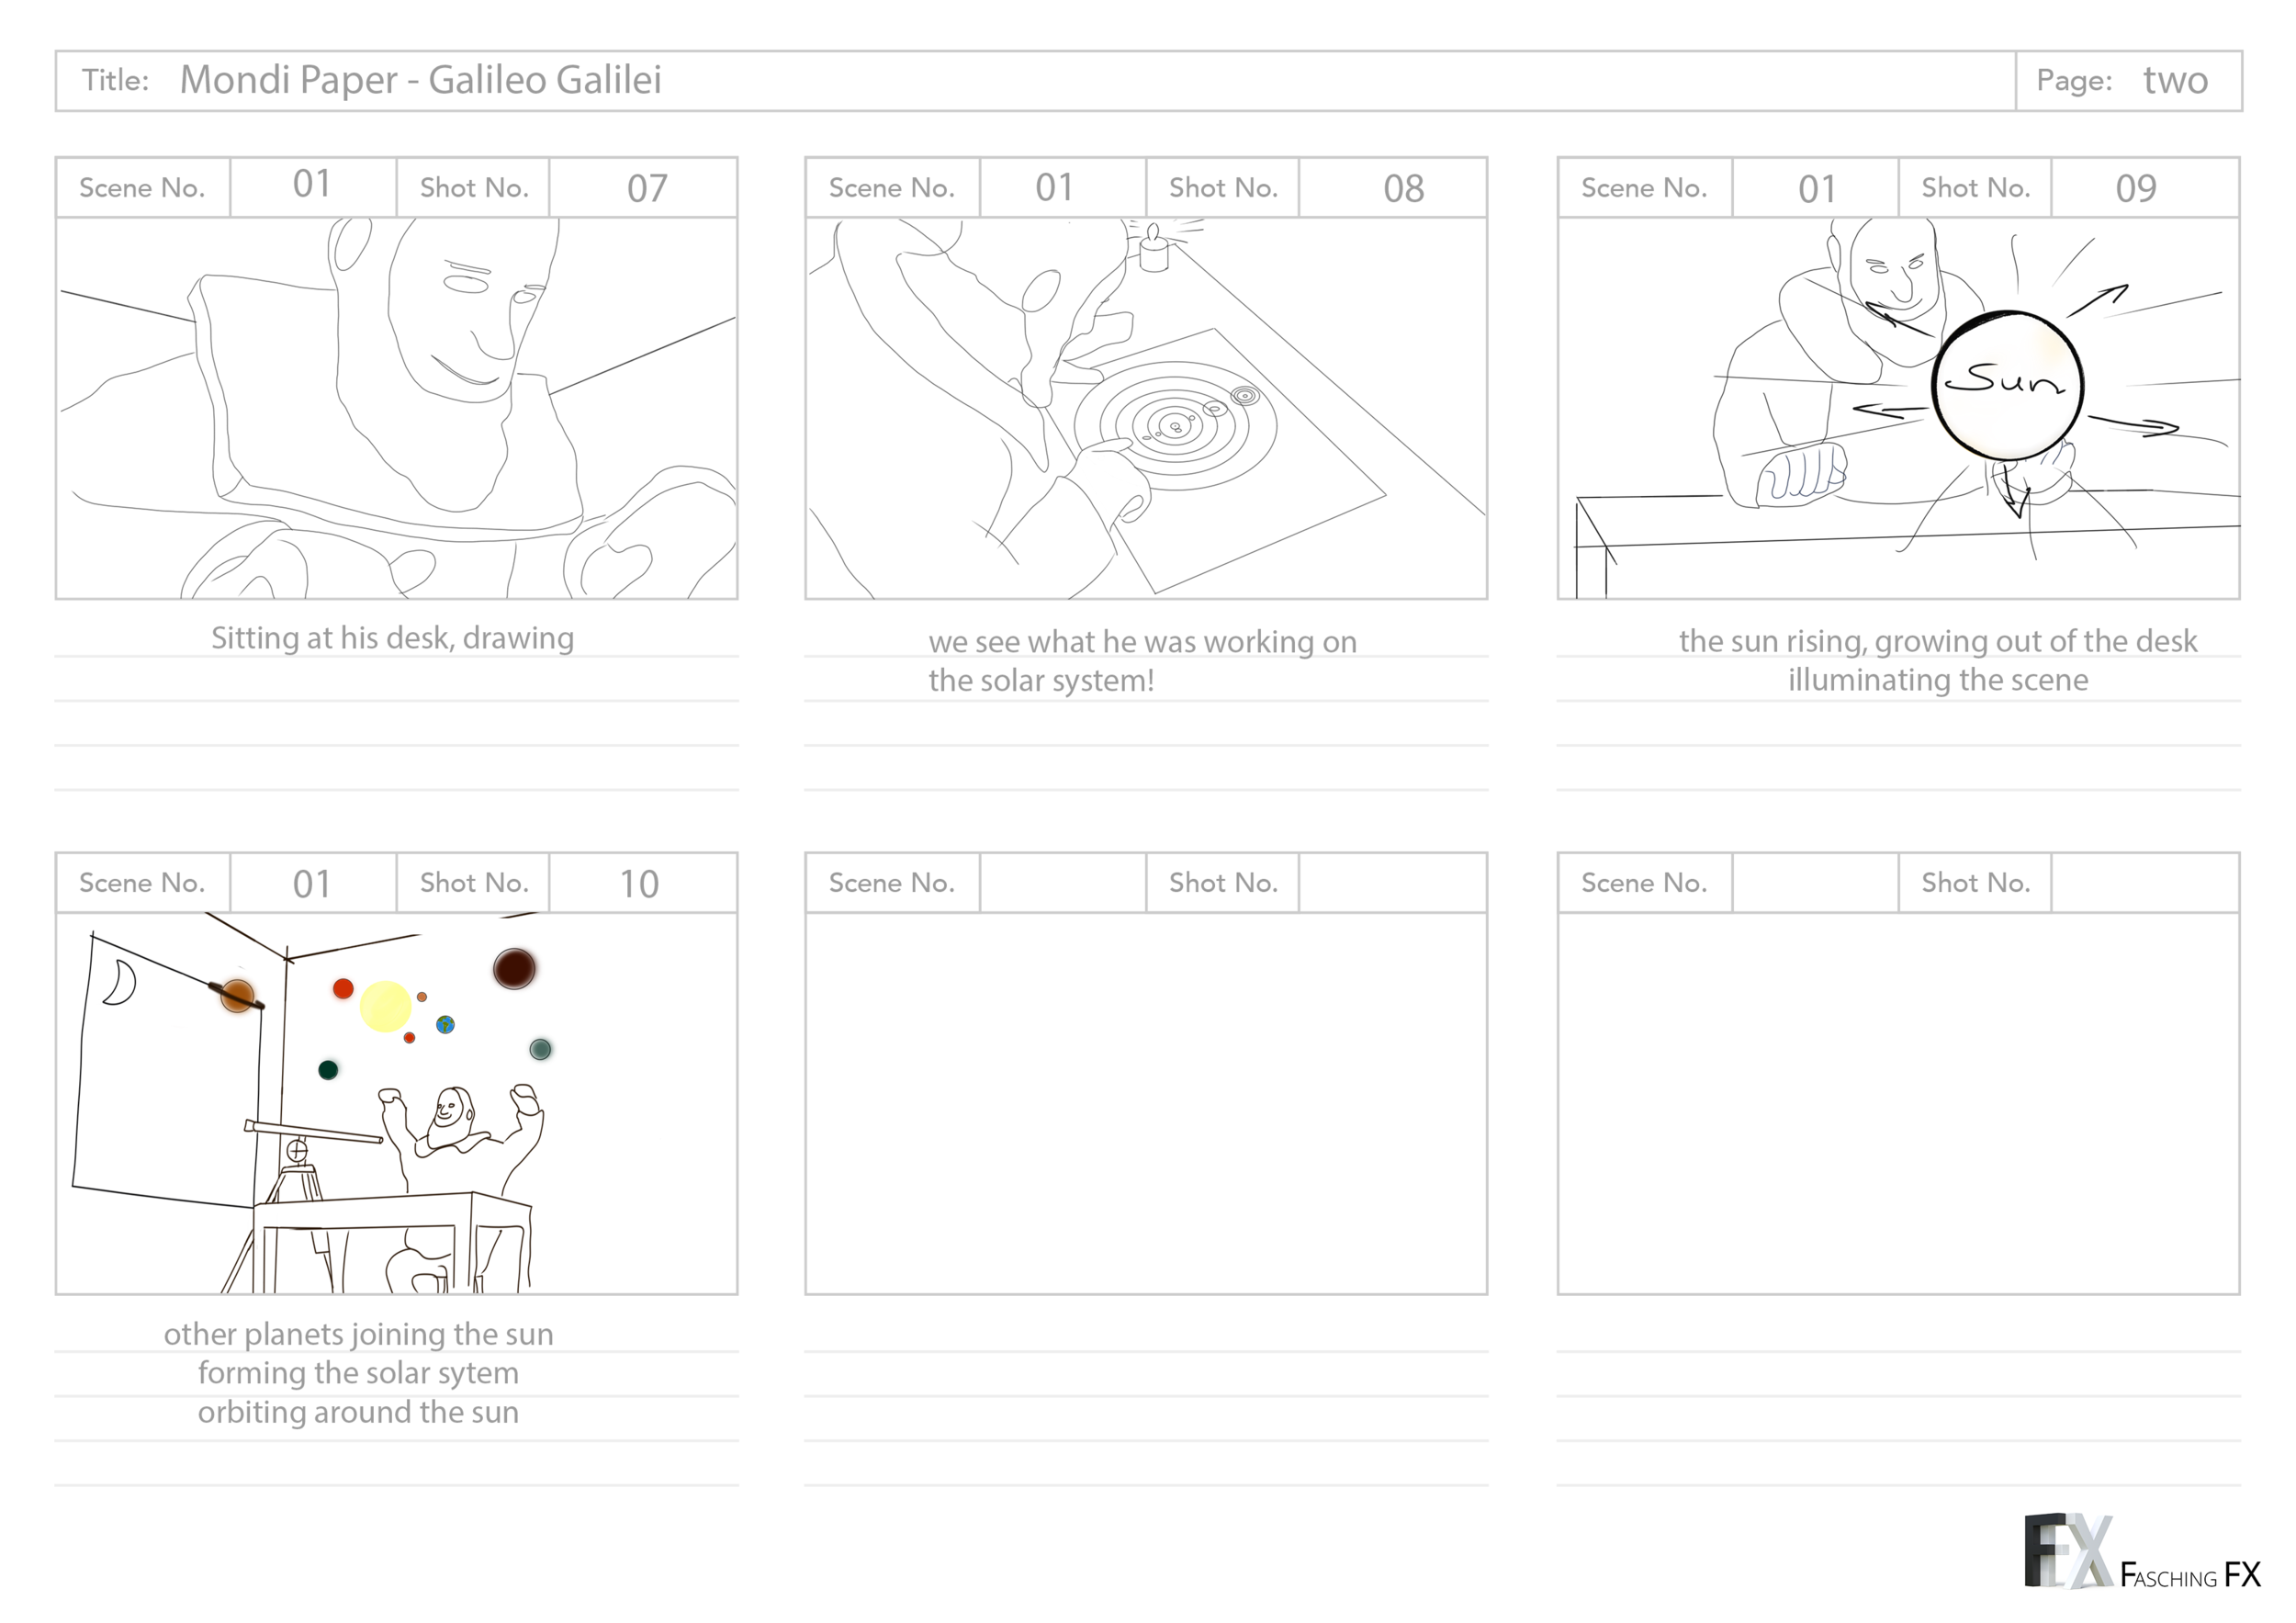 galileo_storyboard_v01_page_two.png